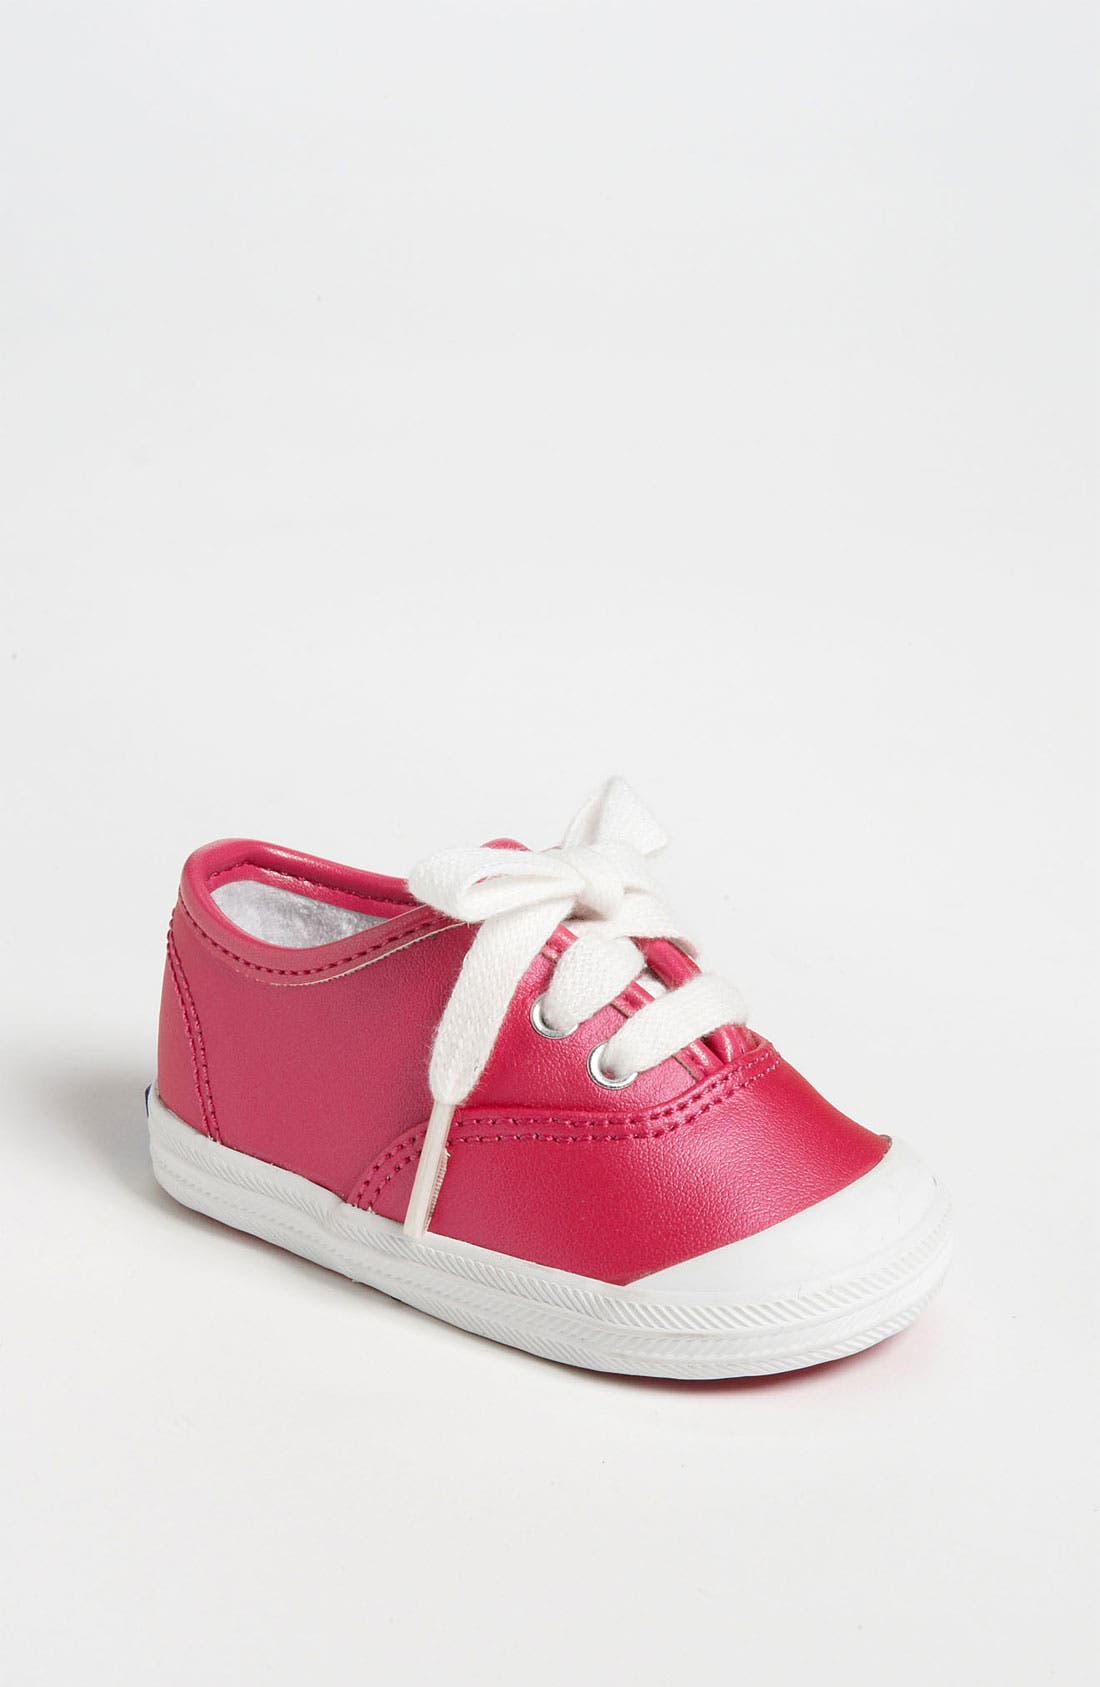 Main Image - Keds® 'Champion' Crib Shoe (Baby)